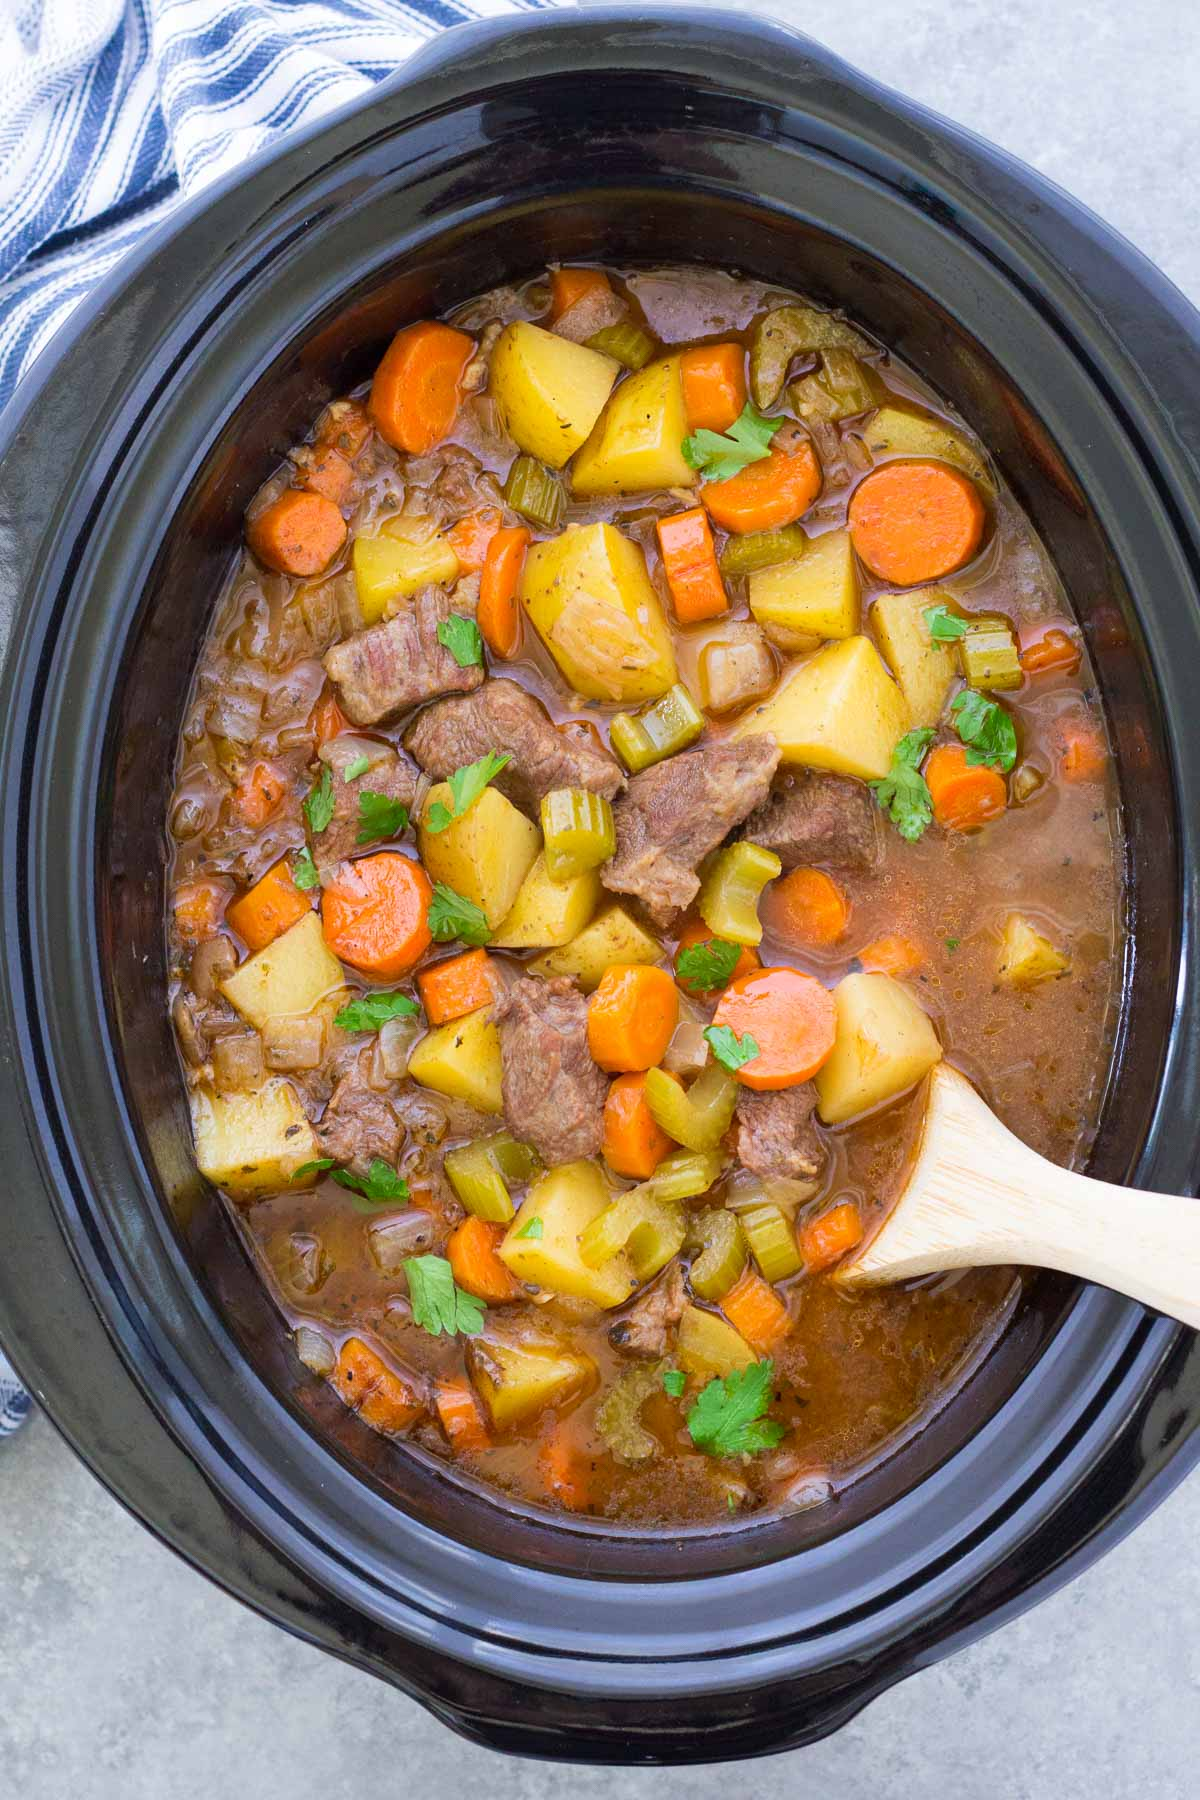 beef stew in a slow cooker with a wooden spoon